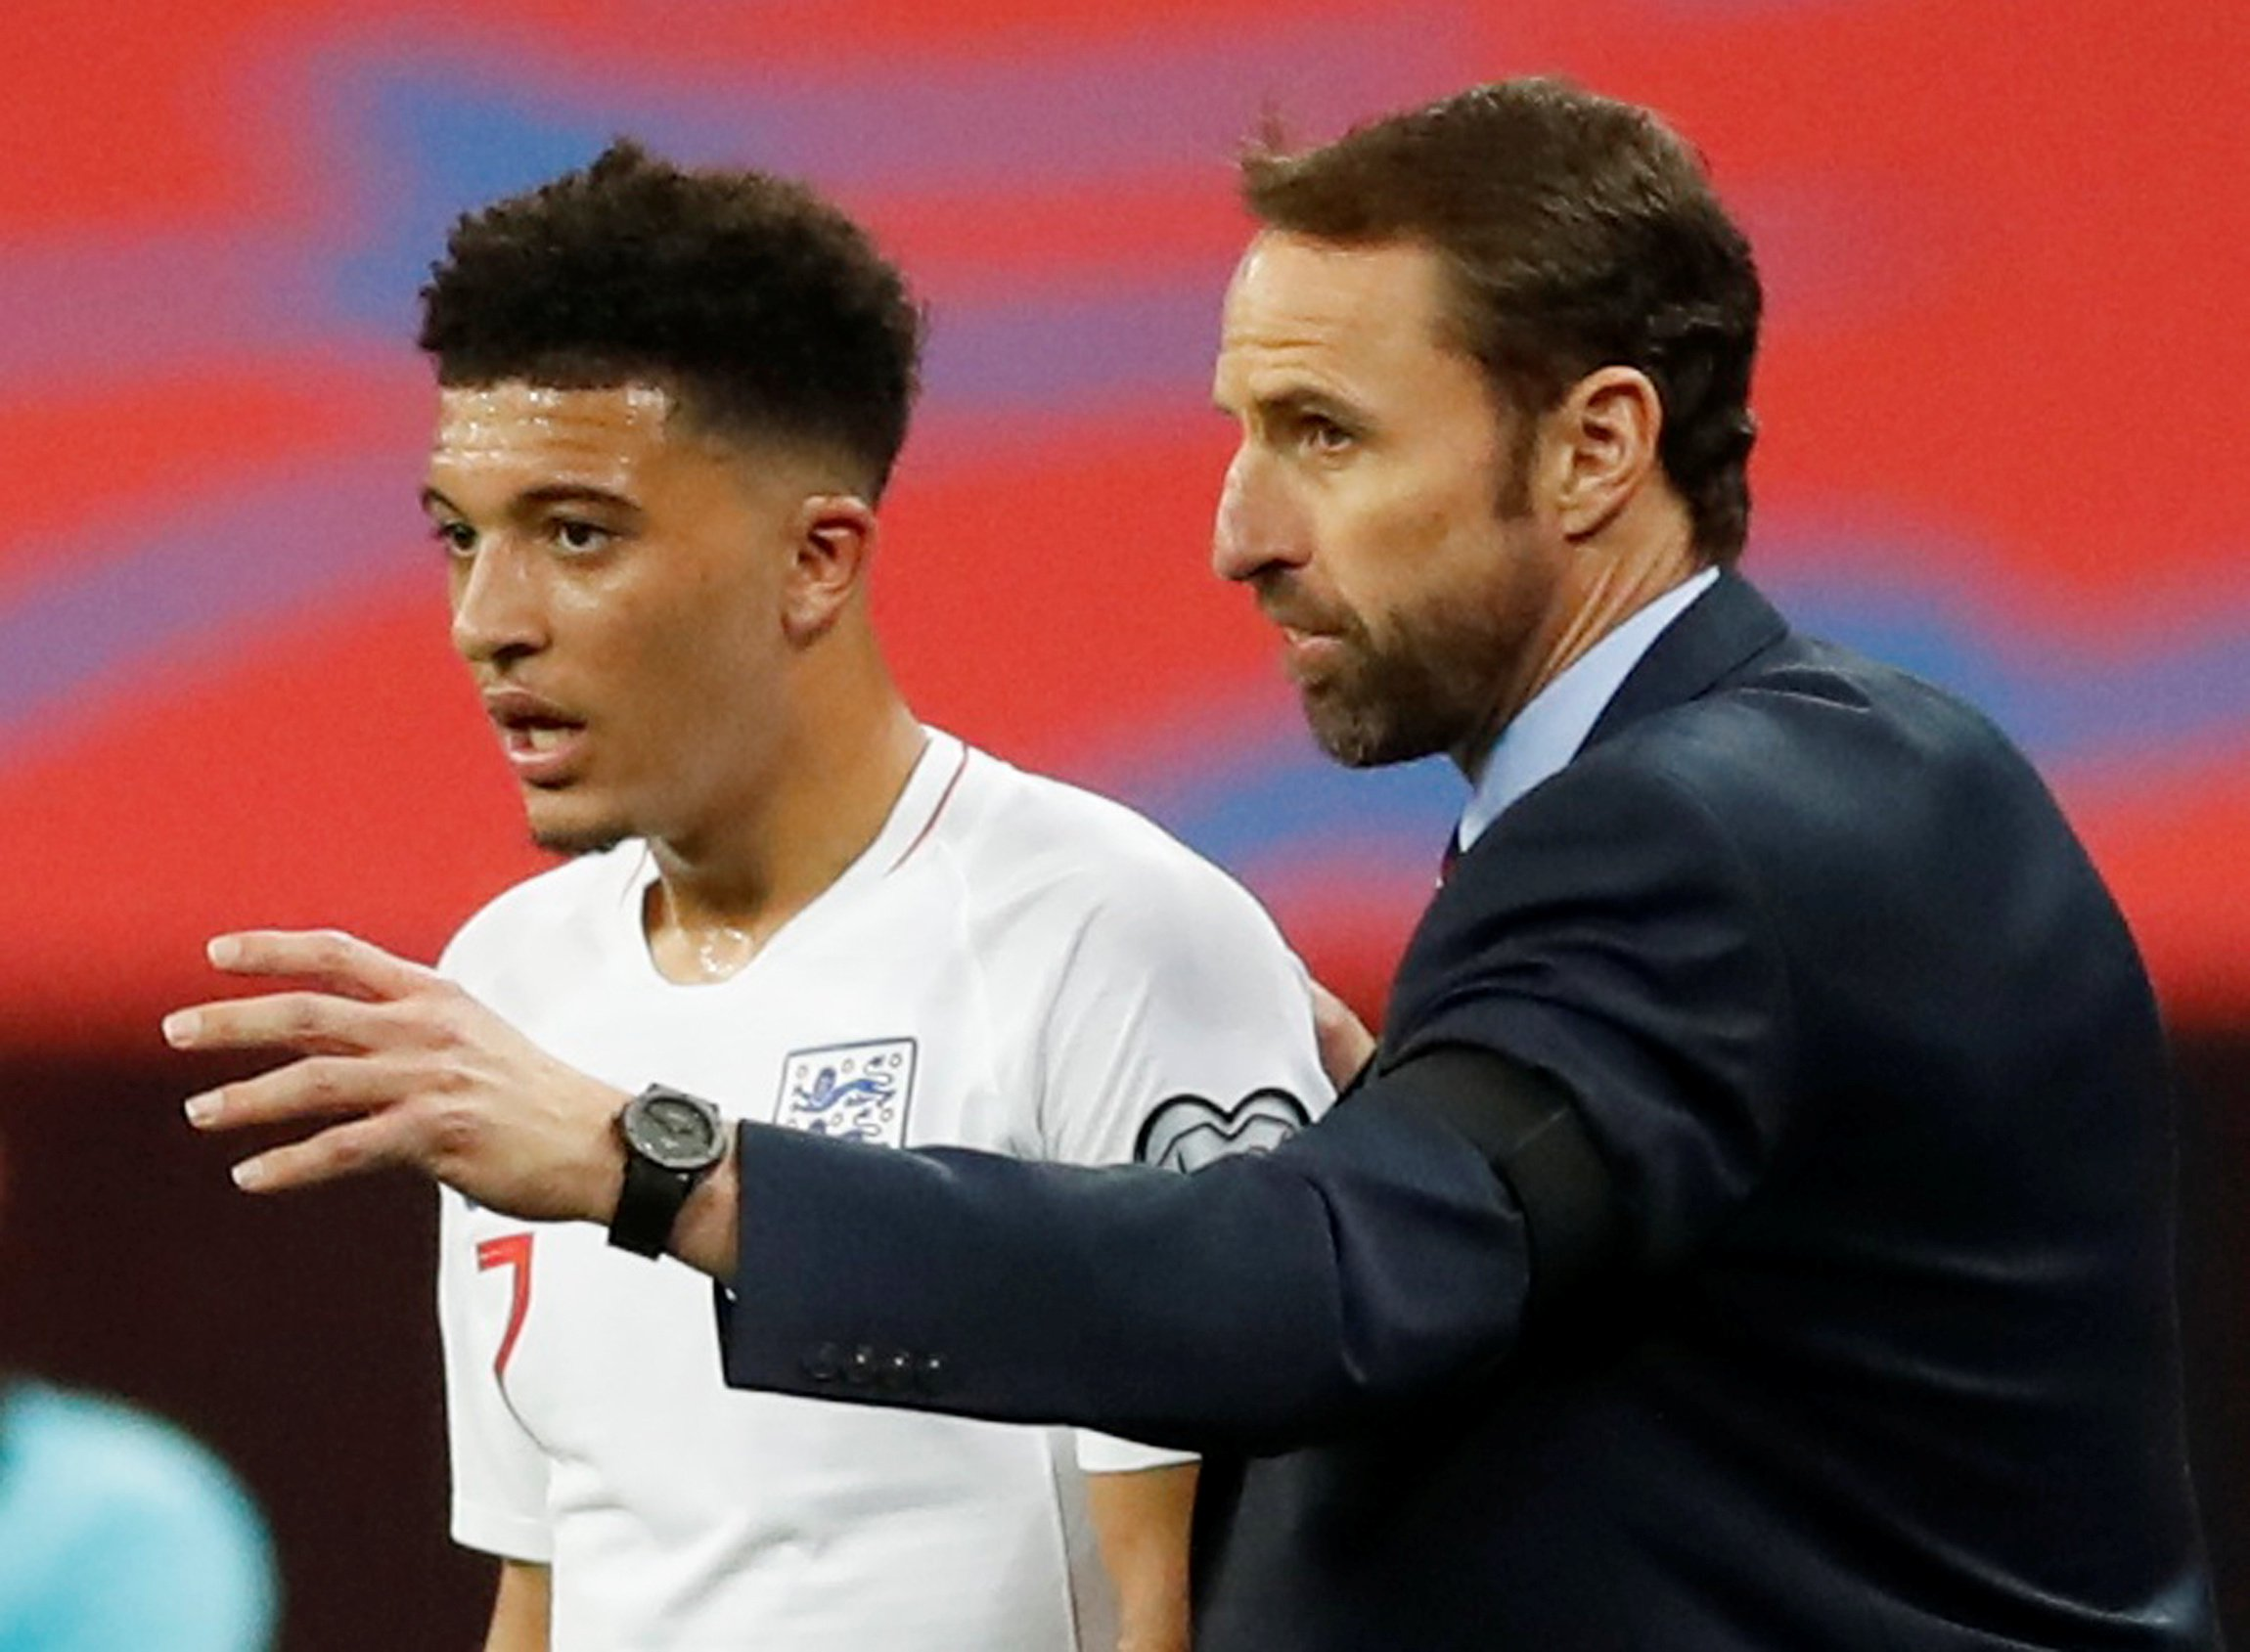 Soccer Football - Euro 2020 Qualifier - Group A - England v Czech Republic - Wembley Stadium, London, Britain - March 22, 2019 England's Jadon Sancho with manager Gareth Southgate Action Images via Reuters/Carl Recine